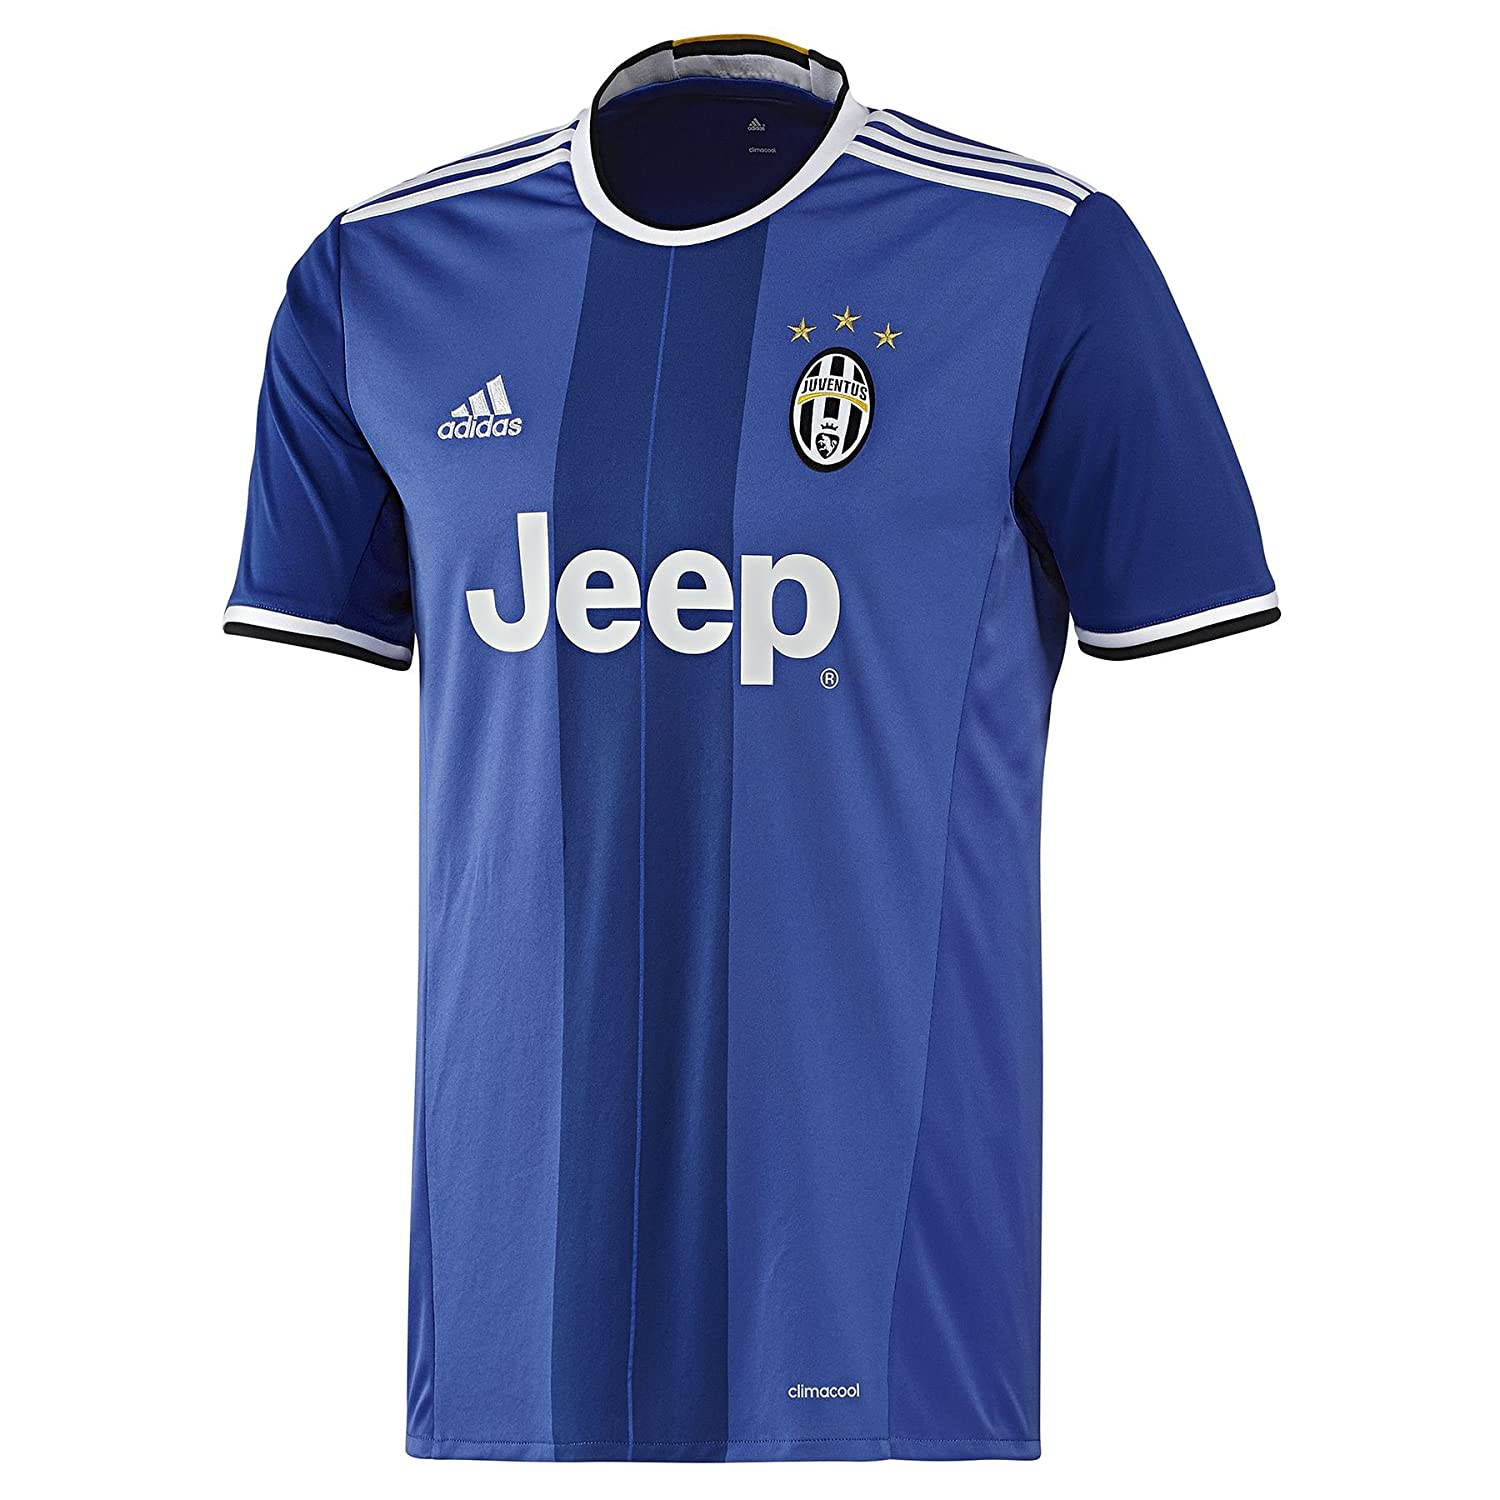 adidas Juve 3s, Maglietta Uomo: MainApps: Amazon.it: Sport e